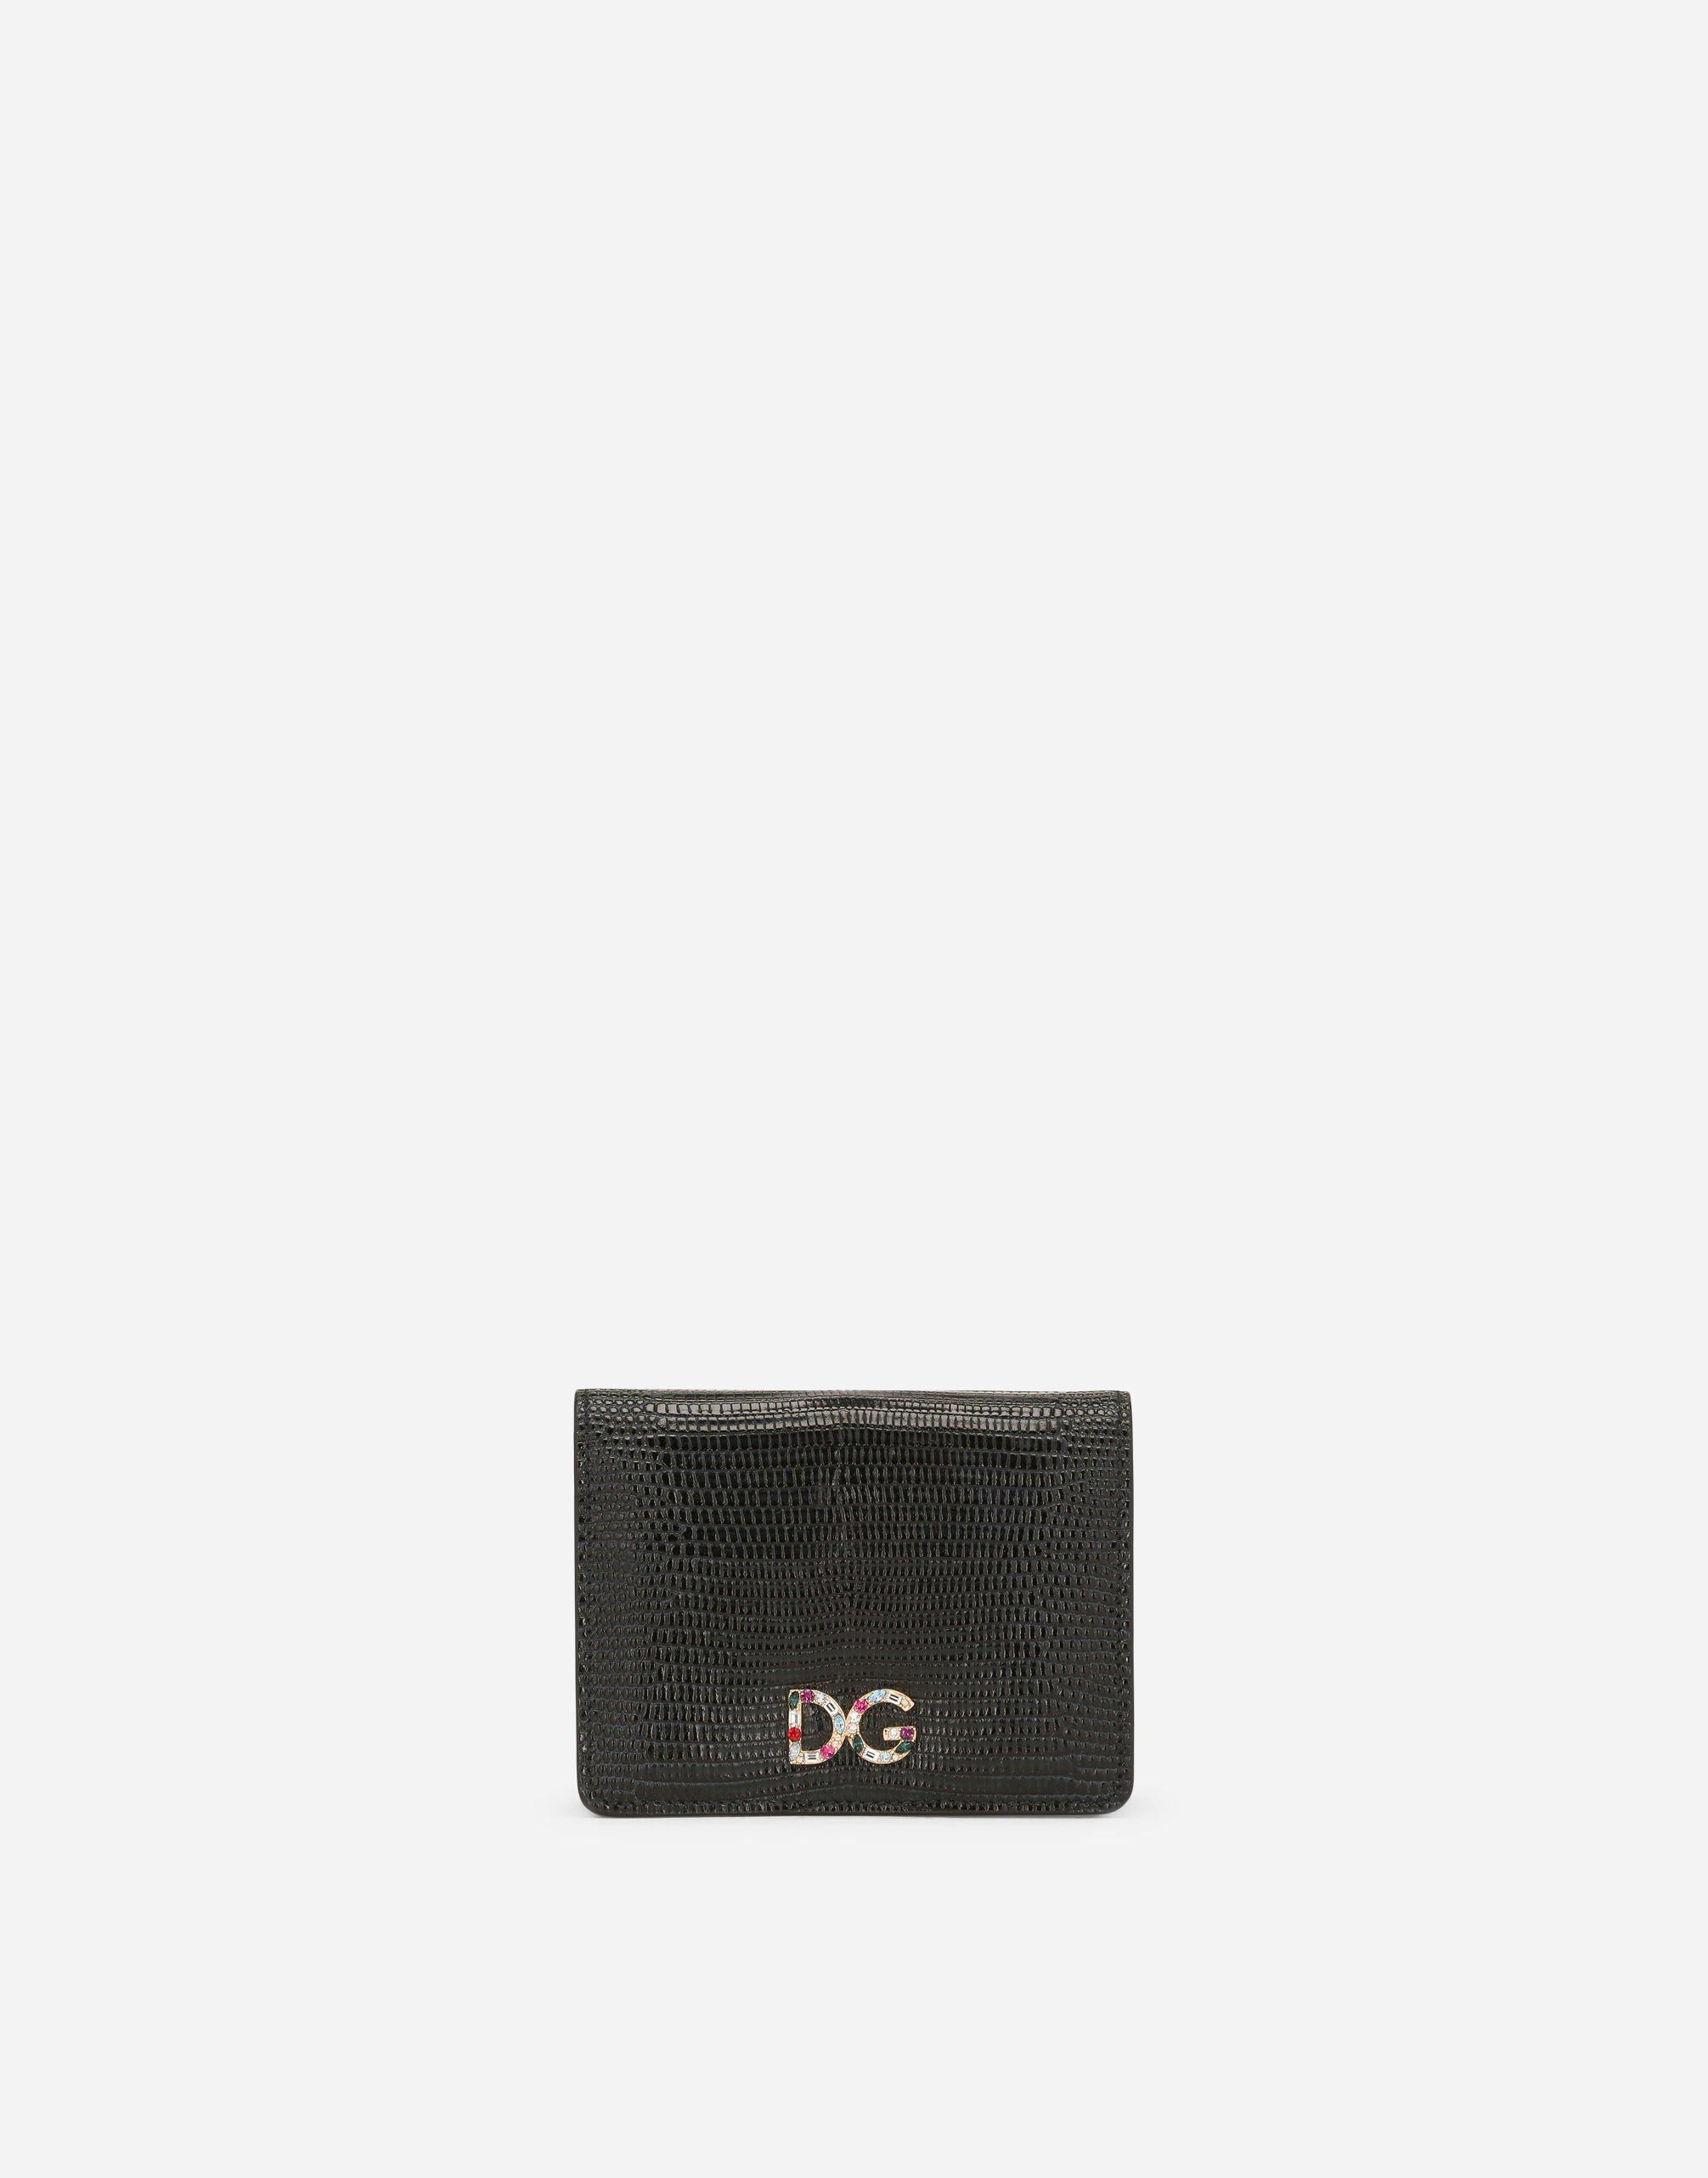 Small continental wallet in Dauphine calfskin with rhinestone-detailed DG logo 0